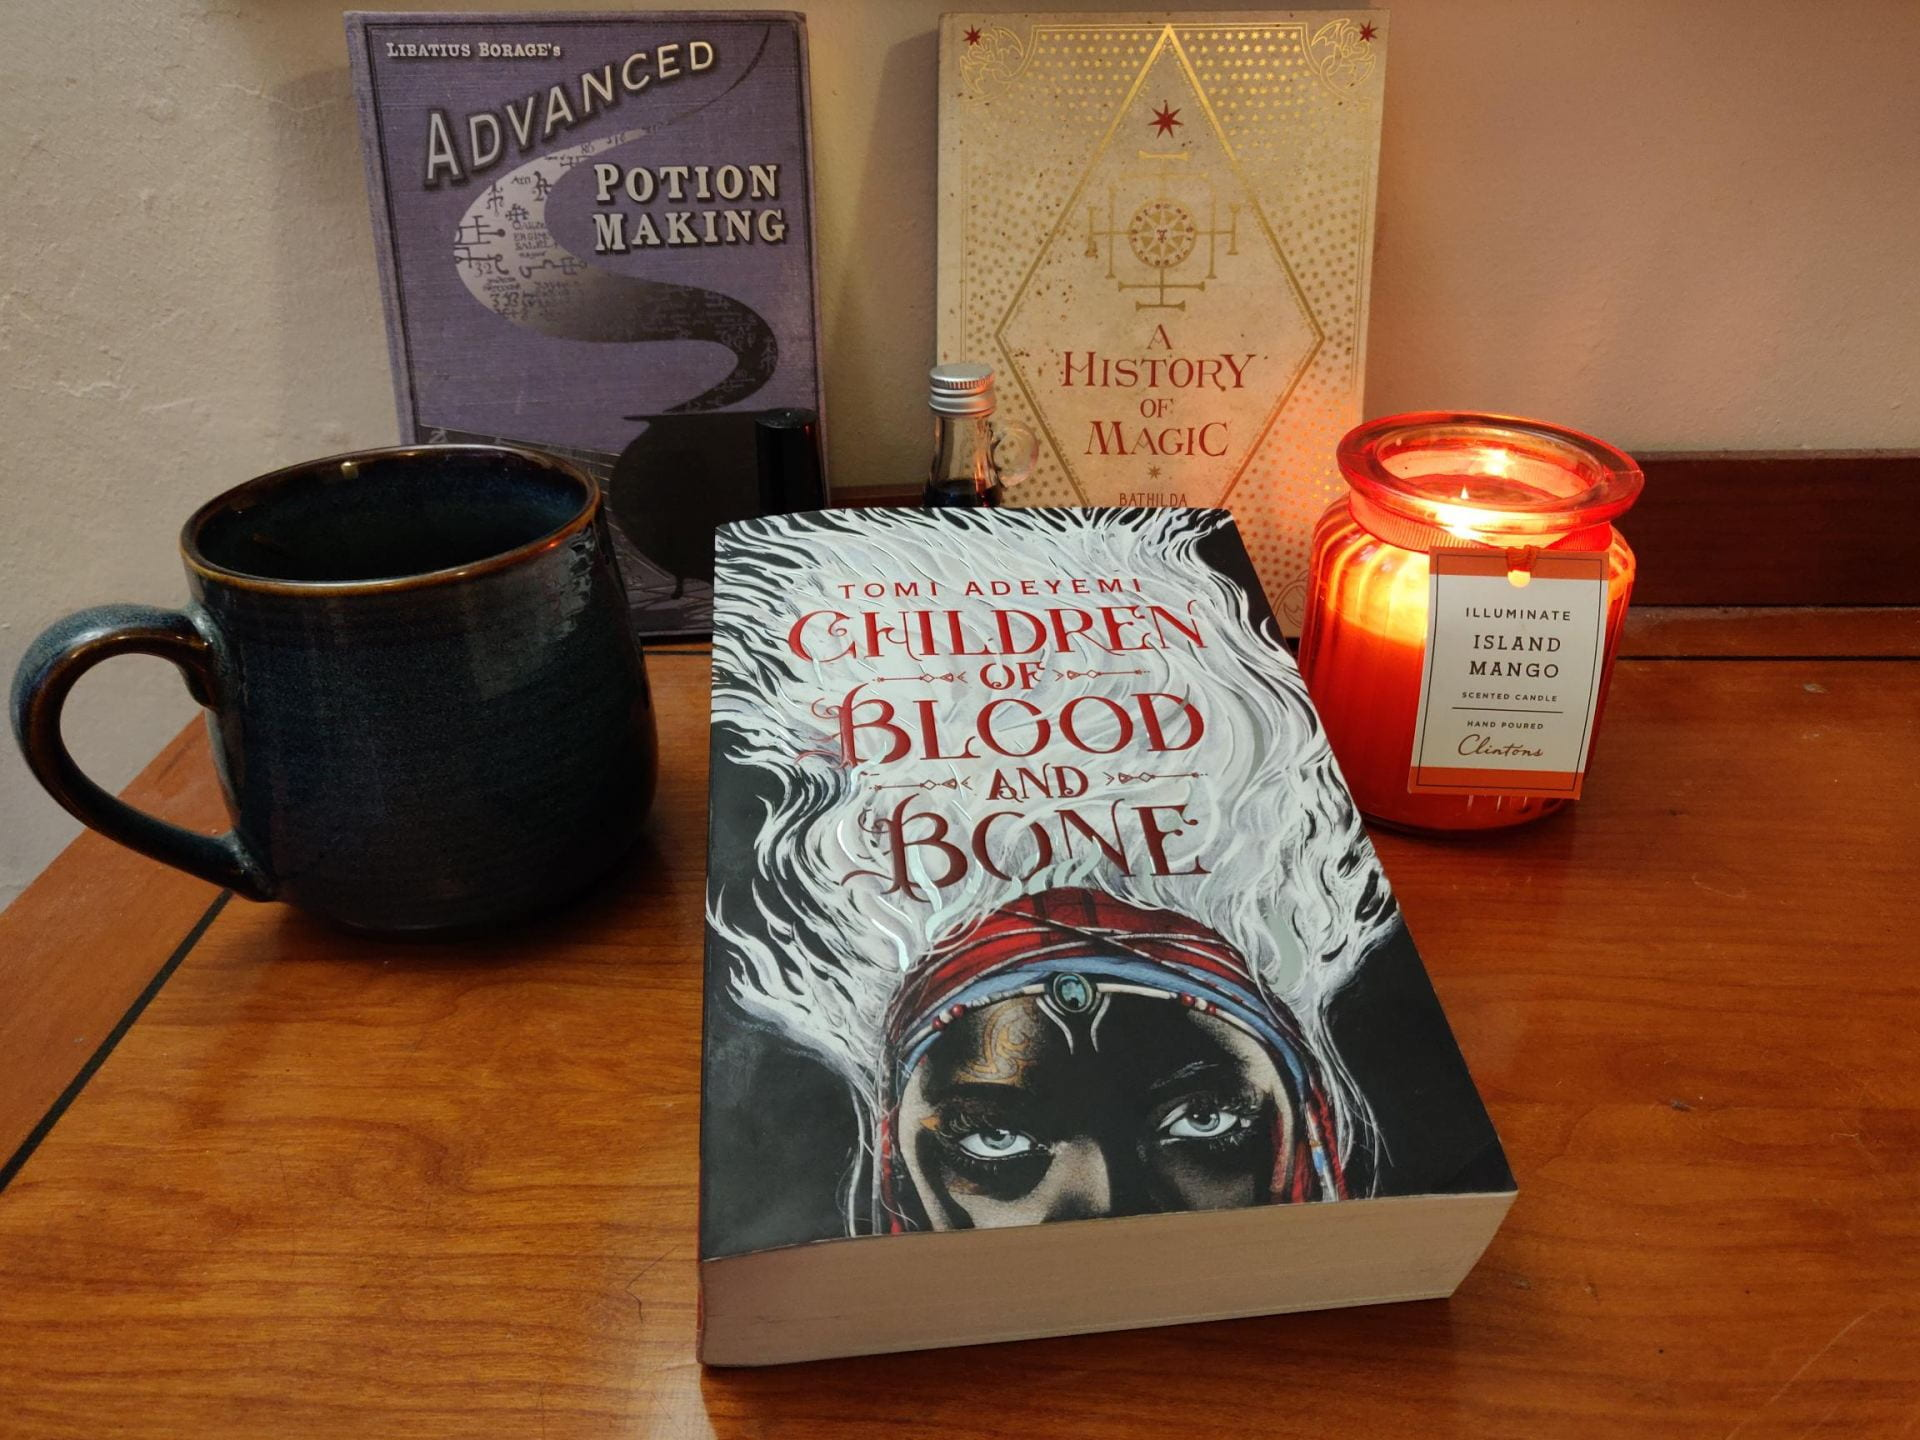 The book 'Children of Blood and Bone' with a candle and a mug